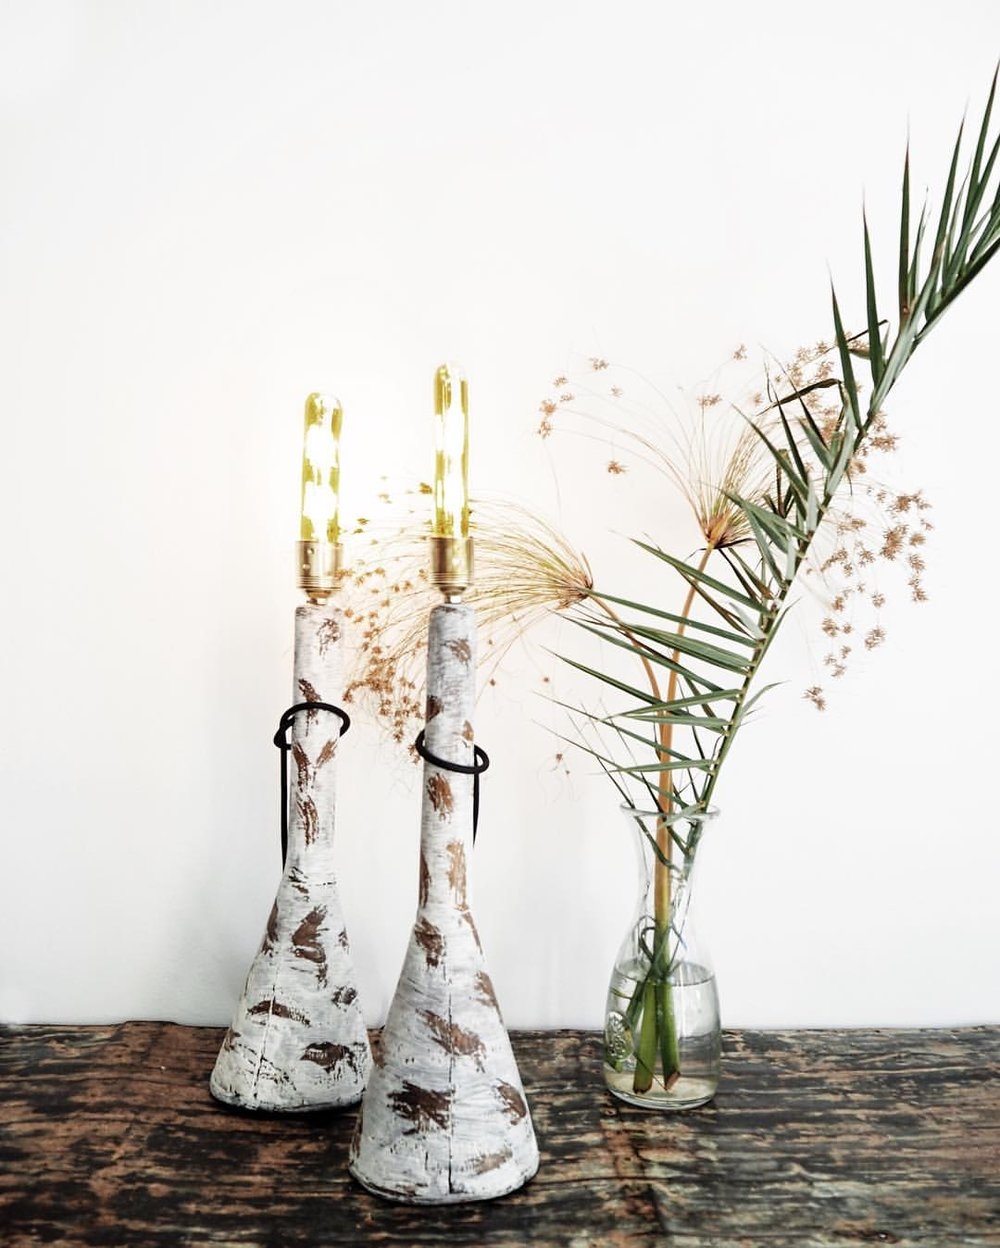 deguayhaus-products-dalmatian-lamps